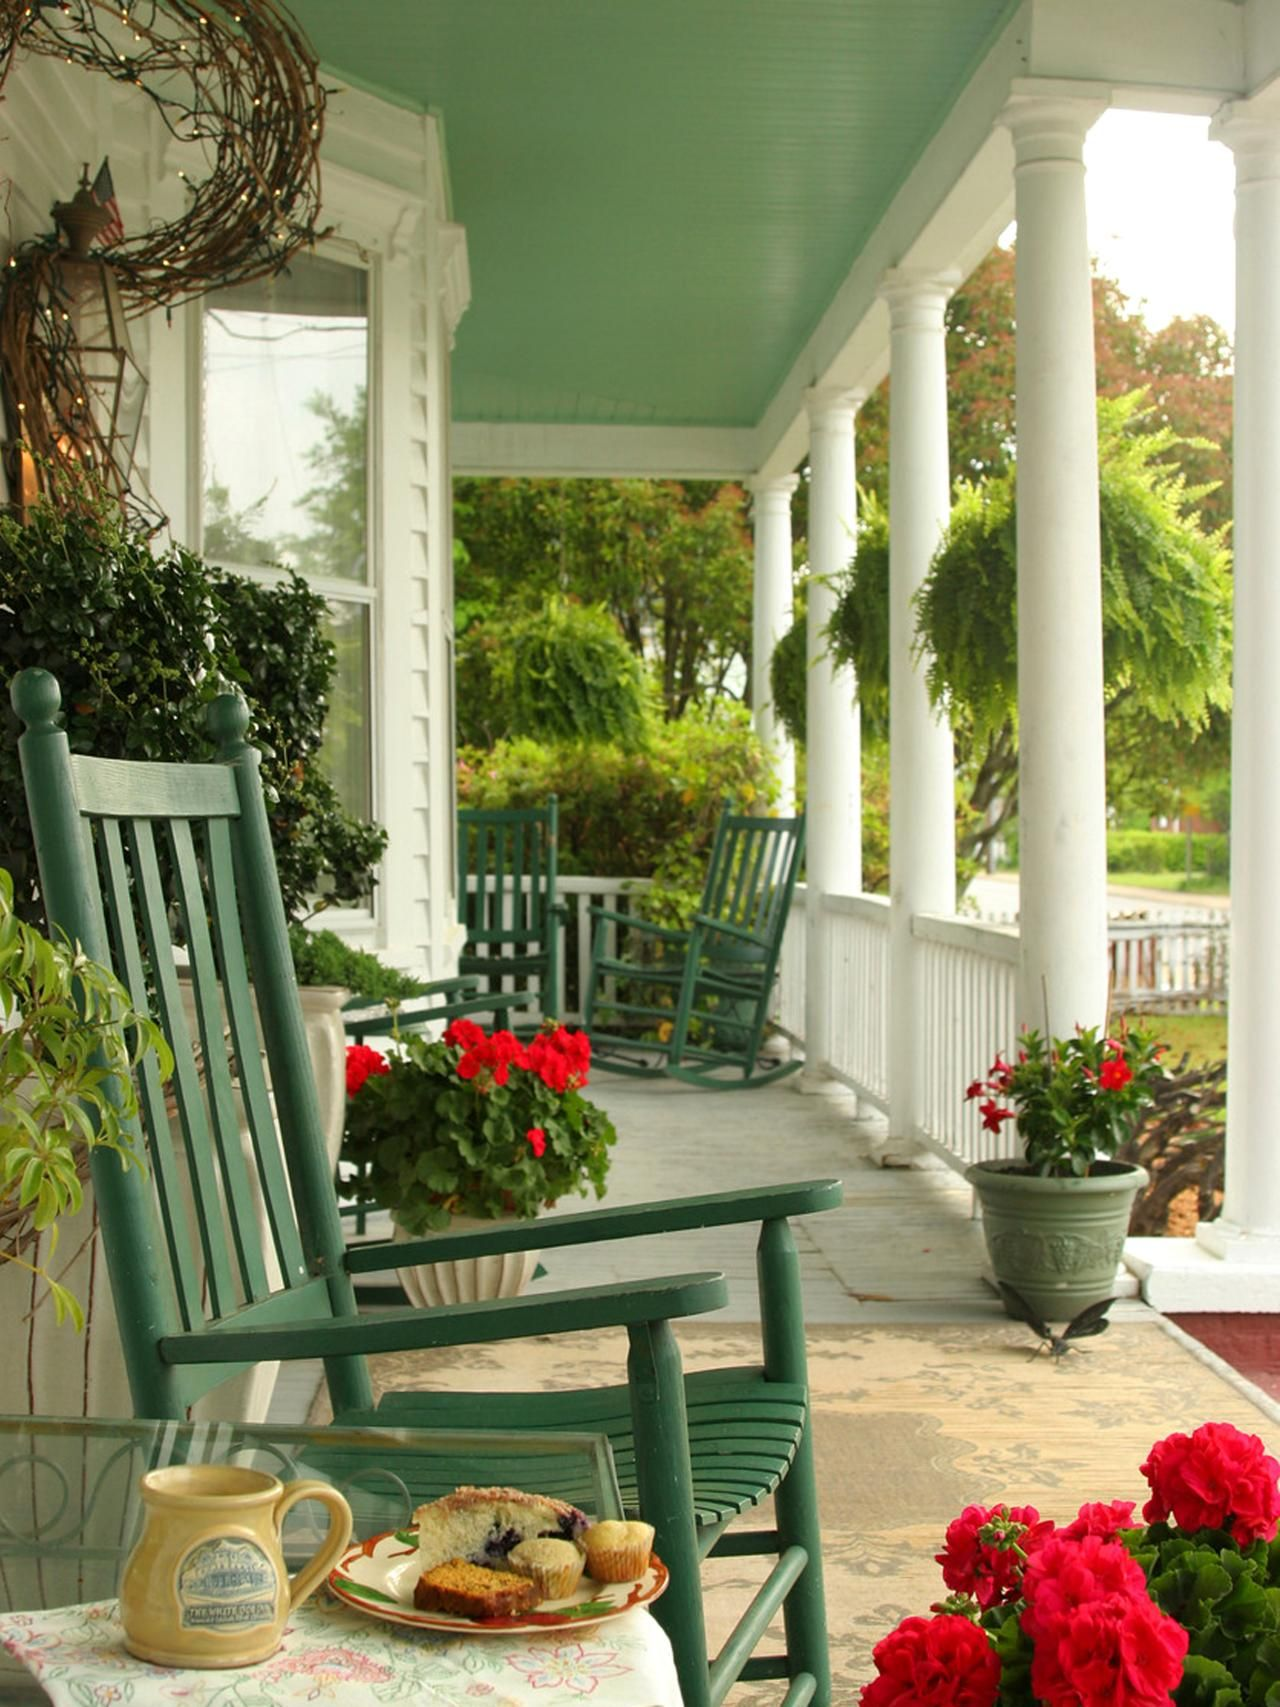 Porch Design Ideas unique porch design inspirations porch design ideas porch design ideas Porch Design Ideas 18 Great Traditional Front Porch Design Ideas